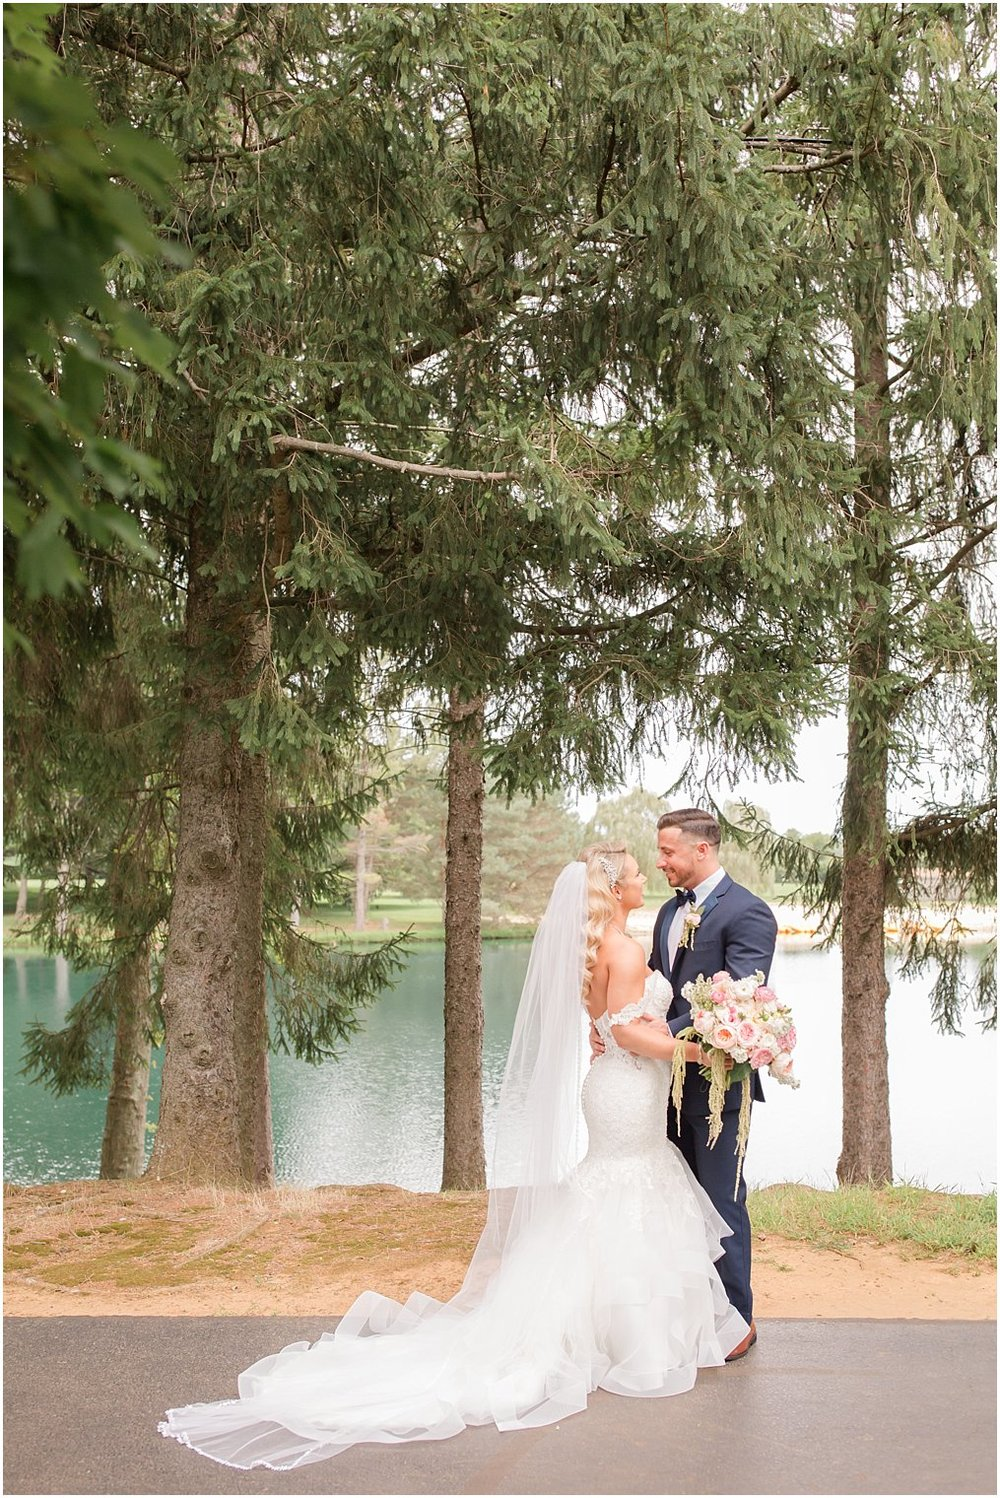 SHANNON + CHRIS - IDALIA PHOTOGRAPHY